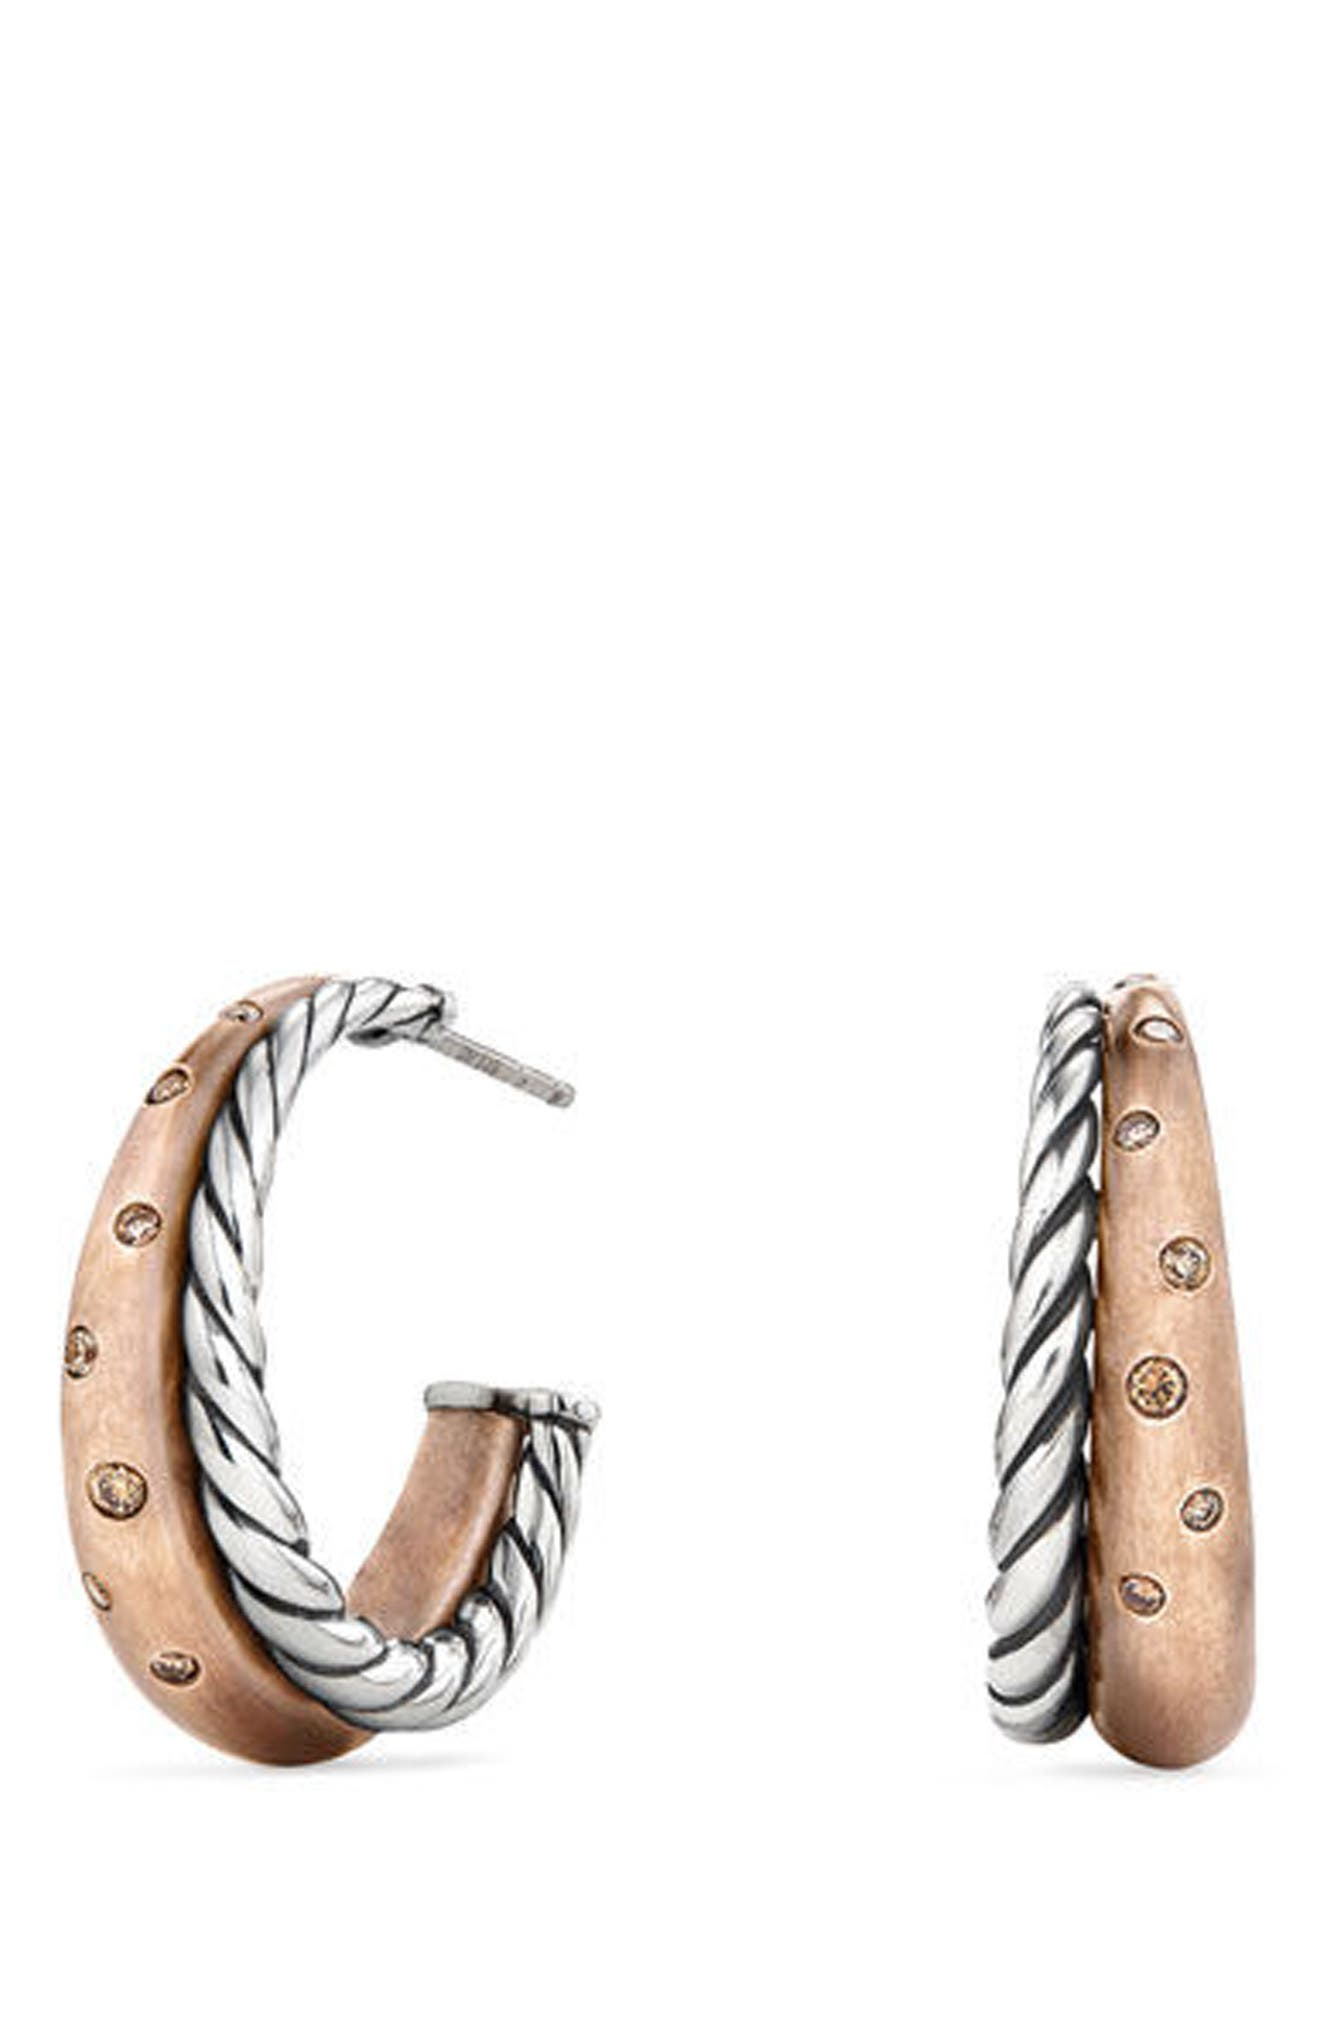 Pure Form Mixed Metal Hoop Earrings with Diamonds, Bronze & Silver, 26.5mm,                         Main,                         color, COGNAC